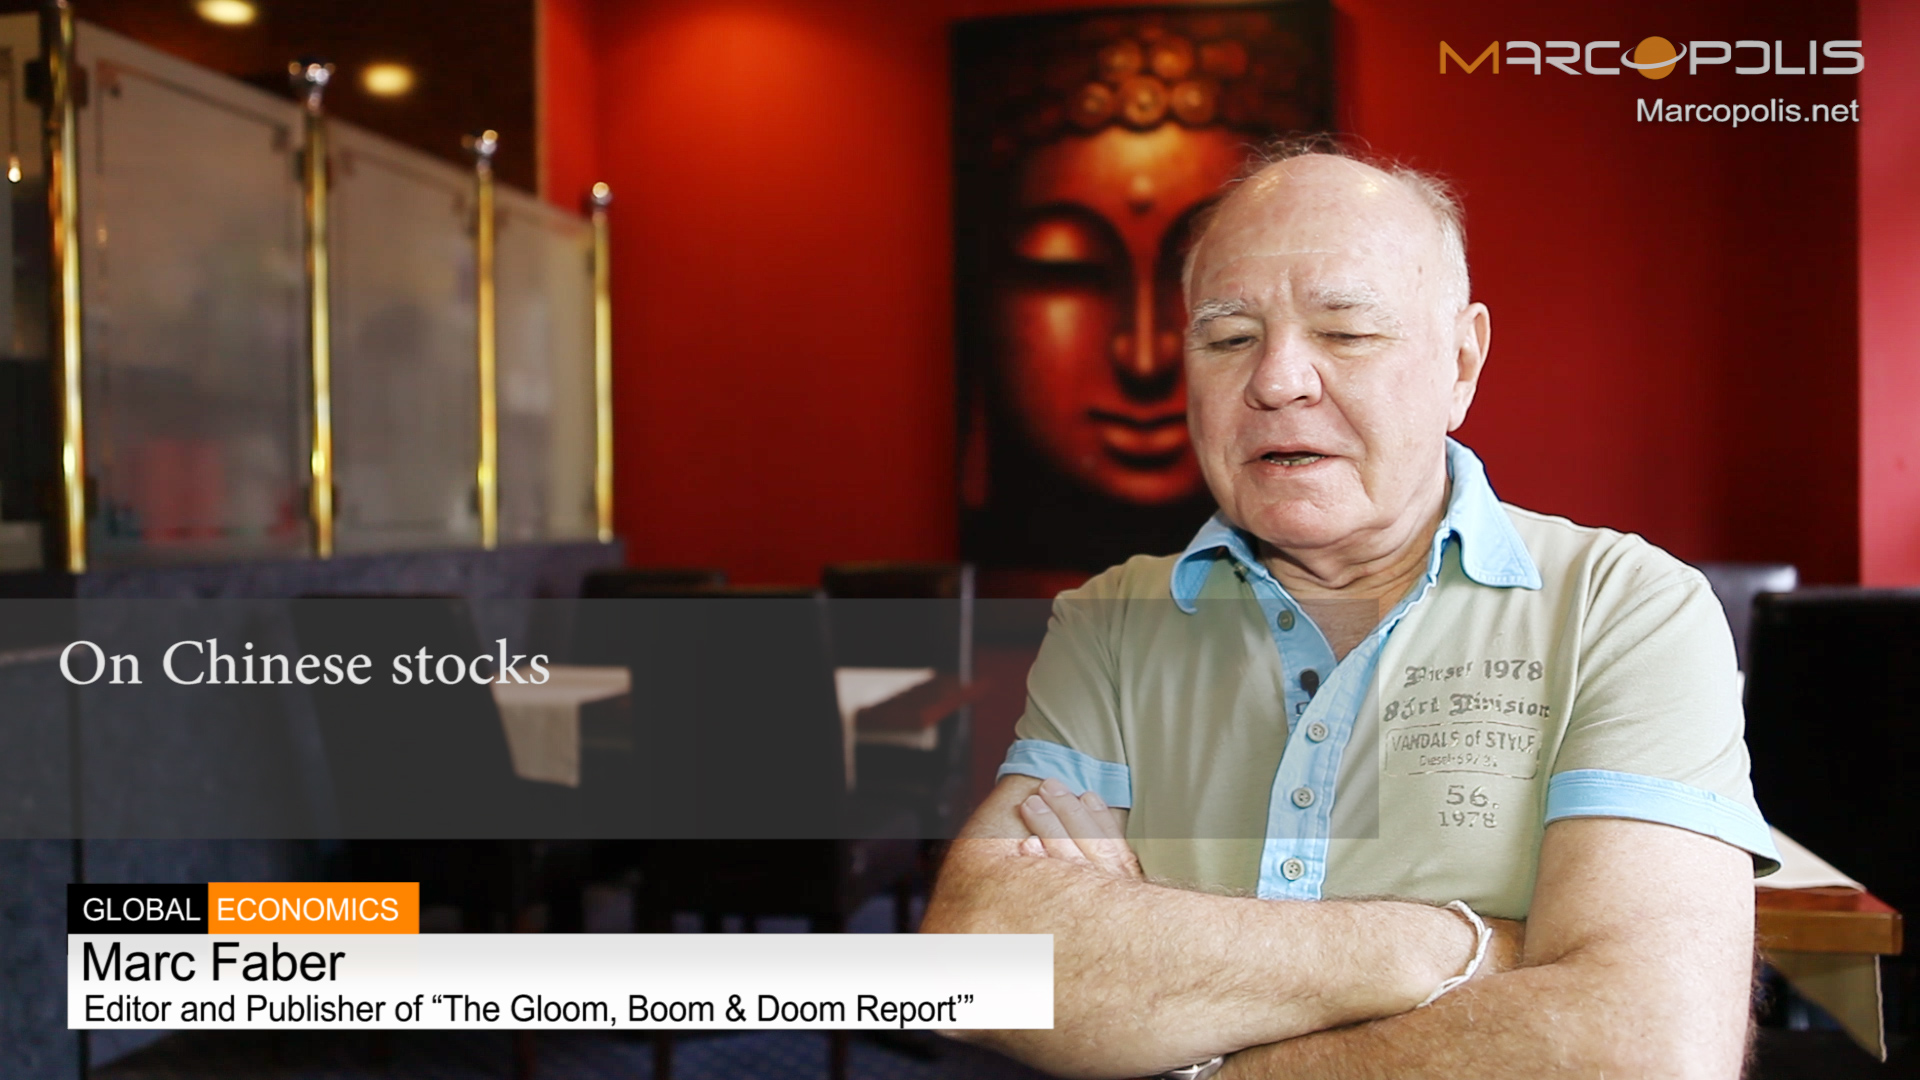 Marc Faber on Chinese stocks